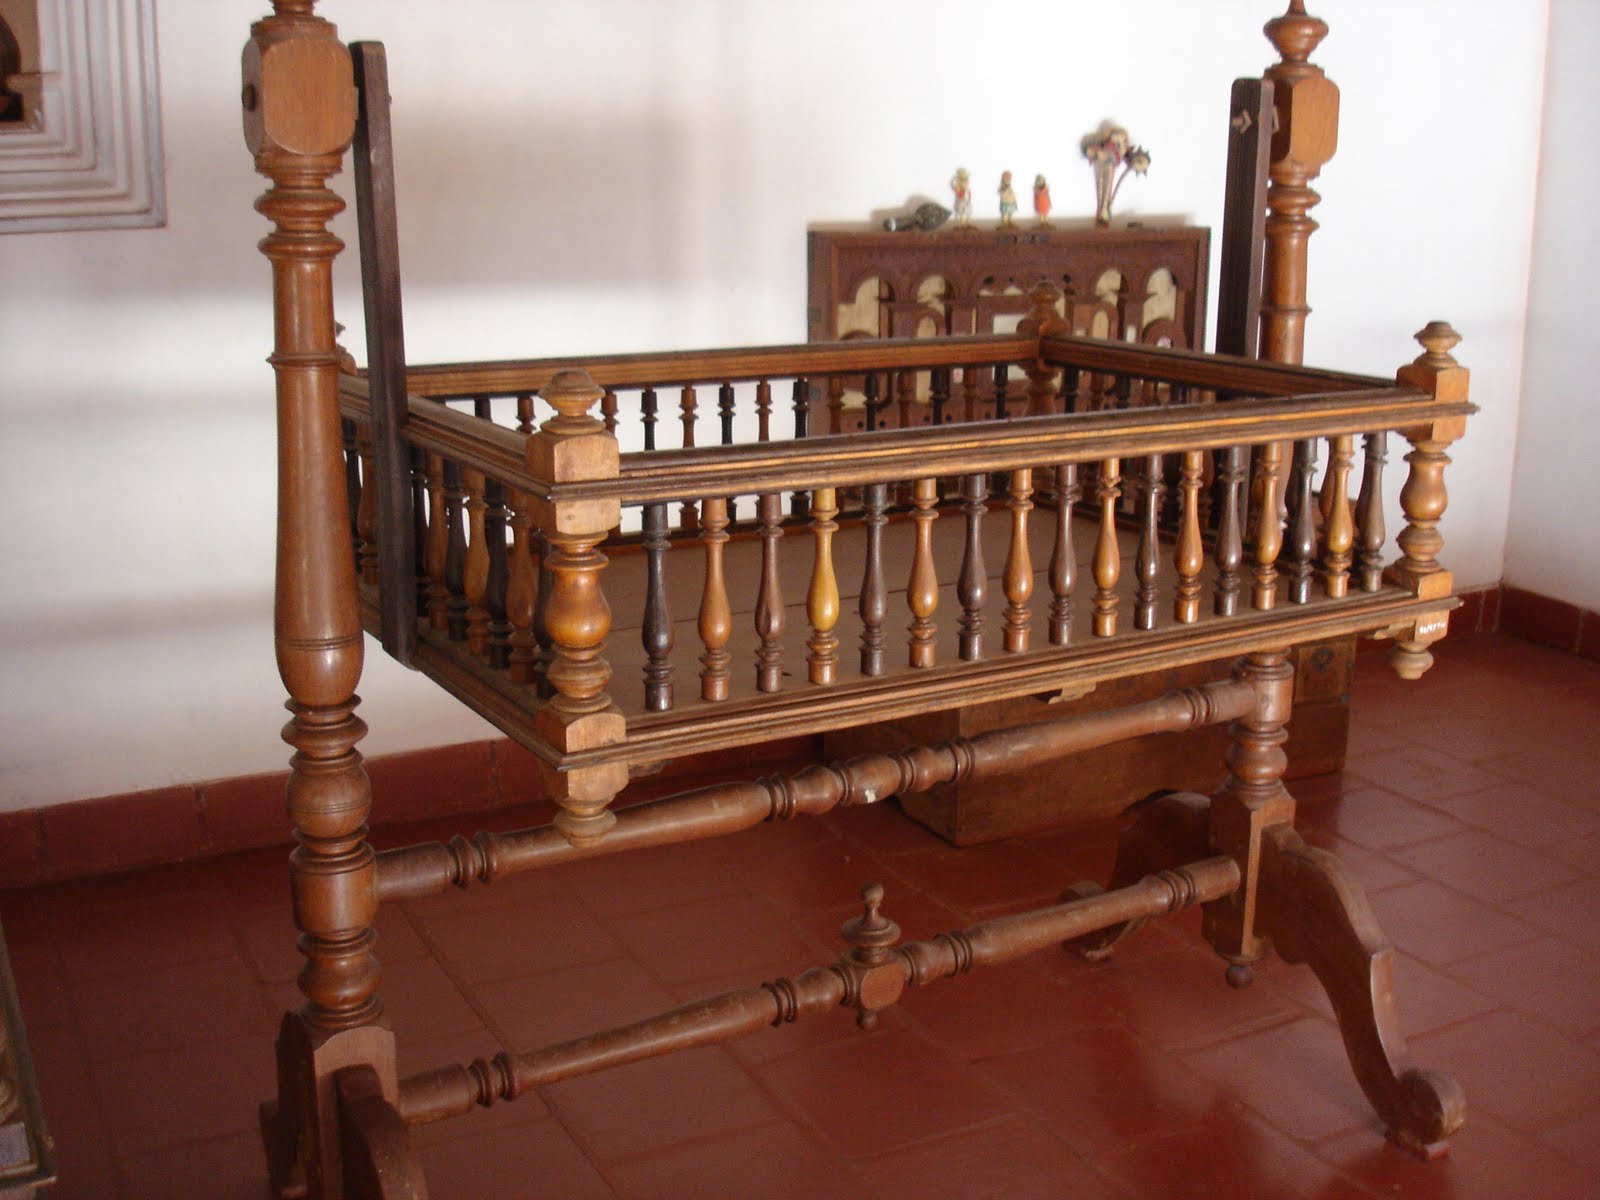 Wooden Cradle | www.woodworking.bofusfocus.com